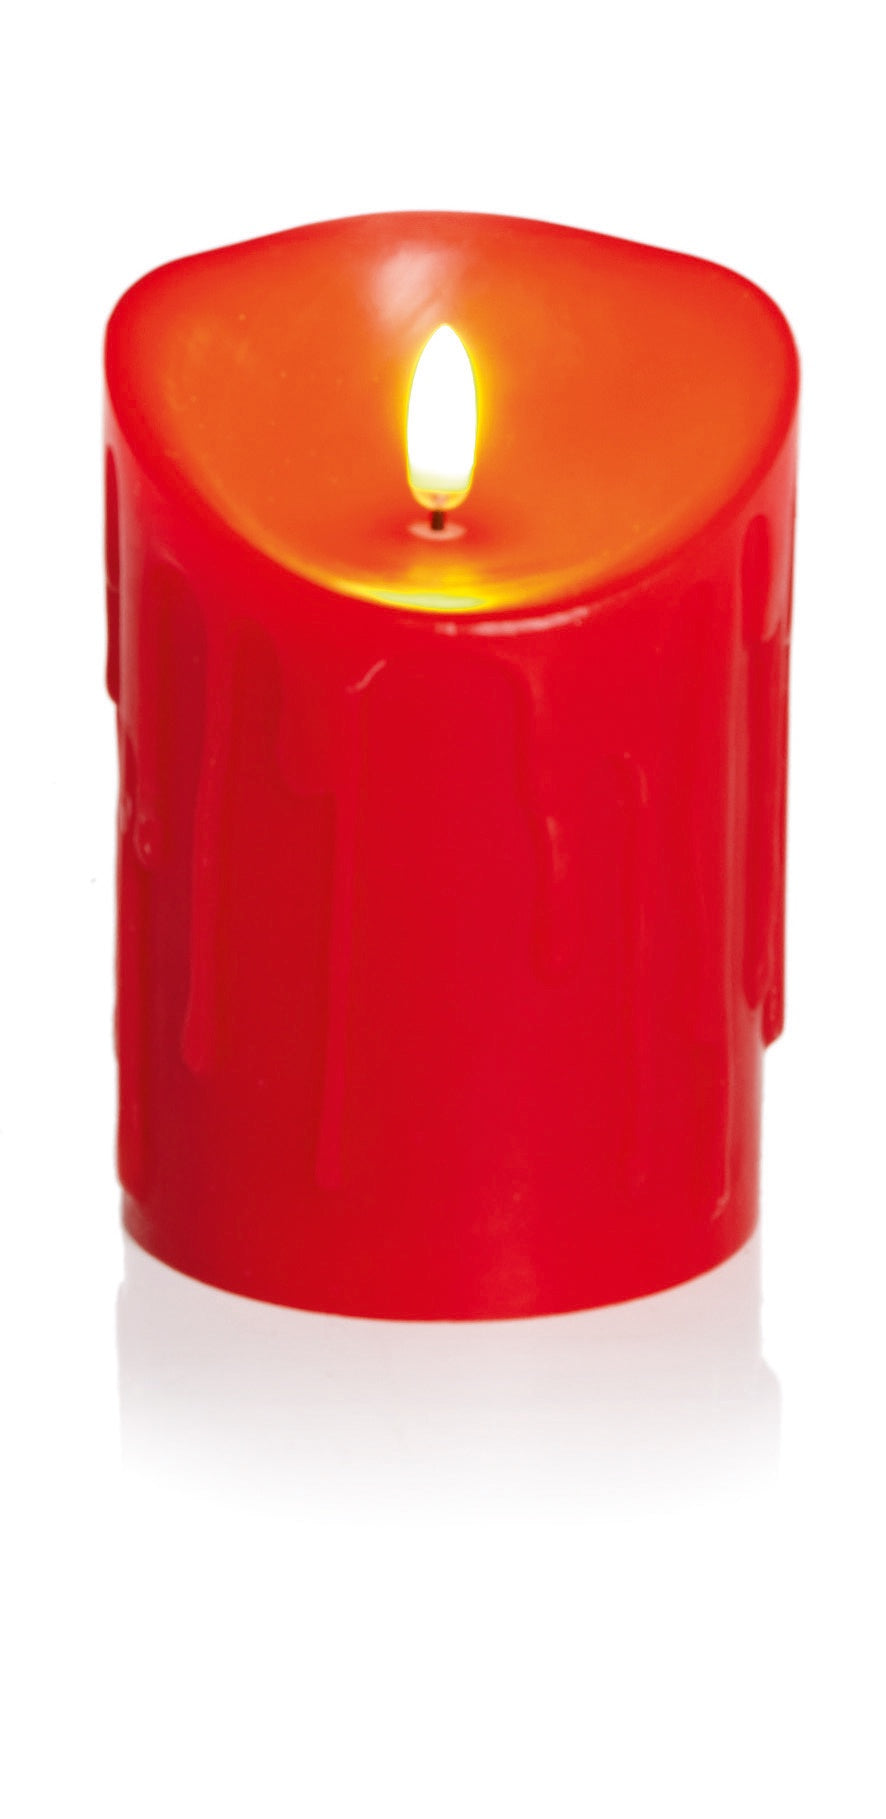 13x9cm Red Melted Edge Flickabright Candle w/Timer